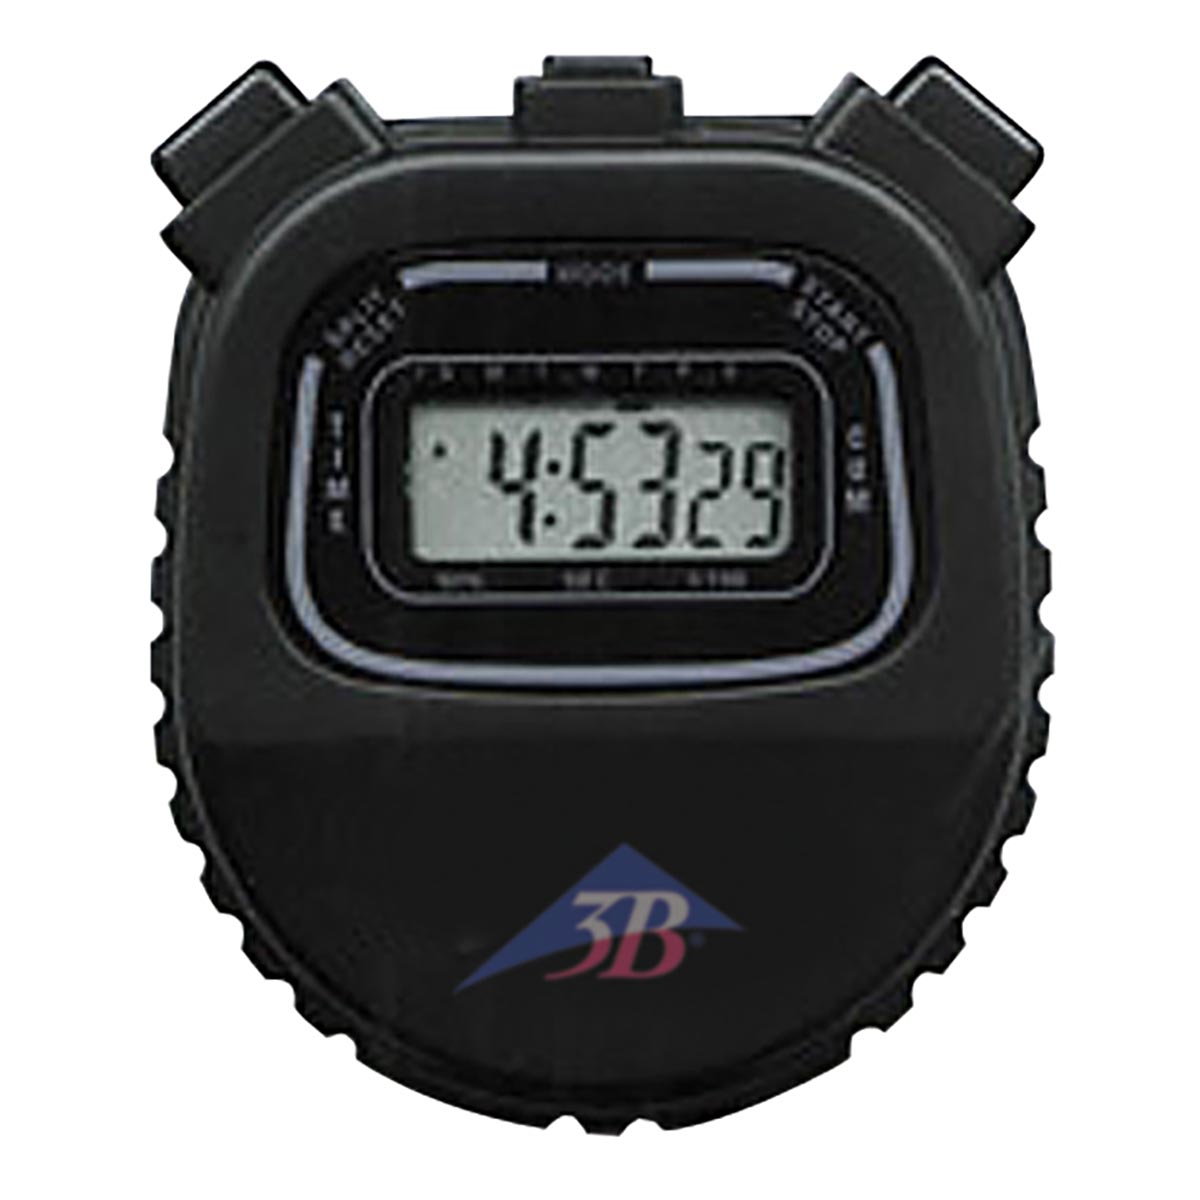 Digital Economy Stopwatch - SW100A - Measurement of Time ...